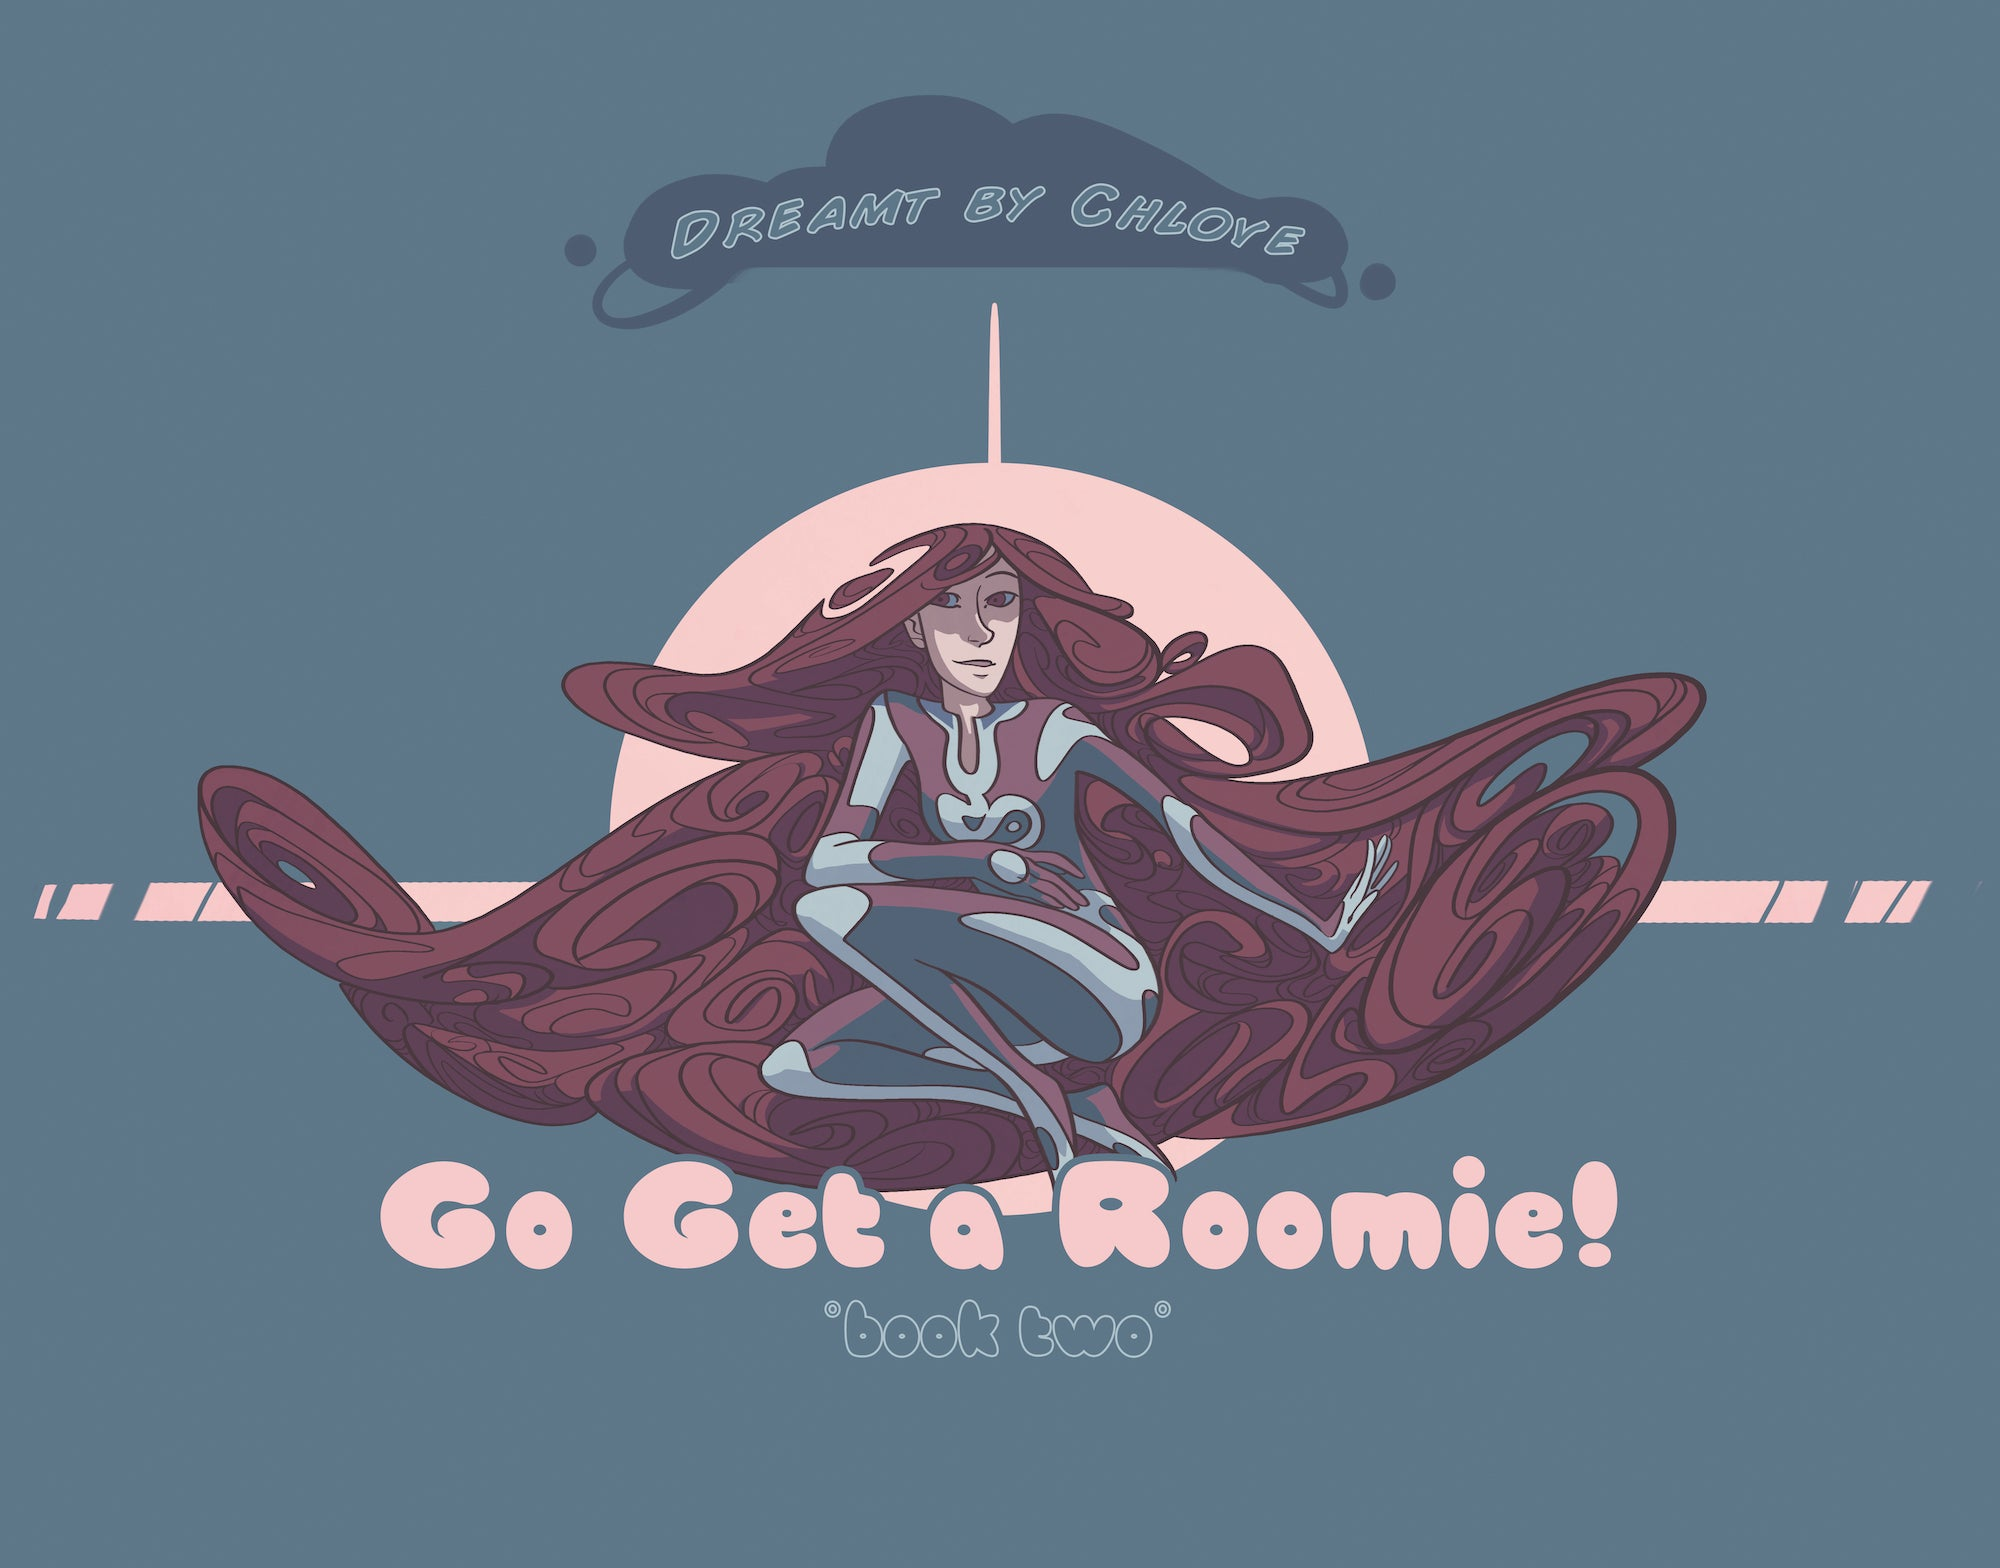 Go Get a Roomie - Book Two from Go Get a Roomie - Webcomic Merchandise